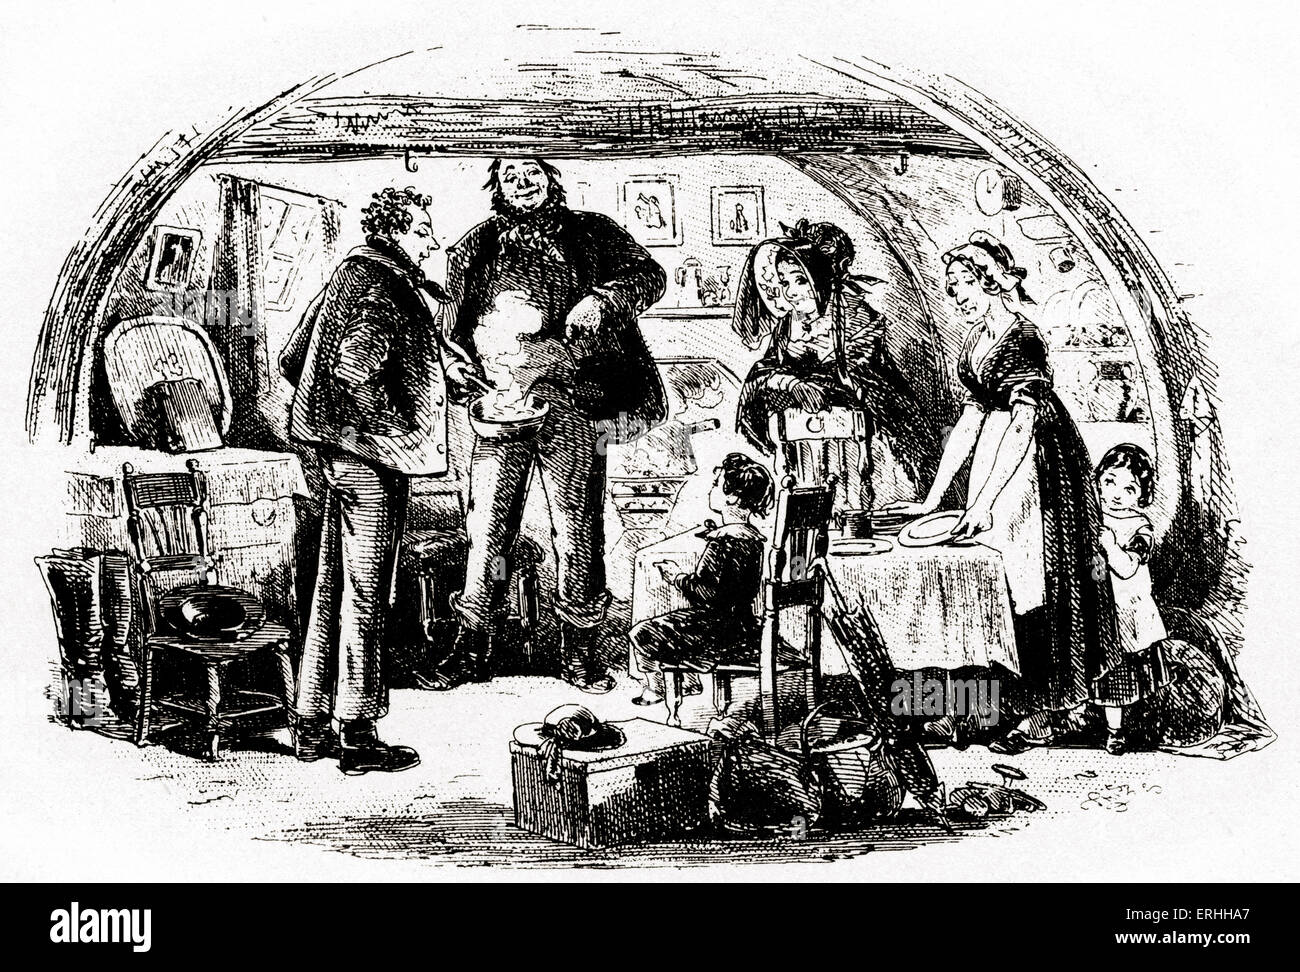 charles dickens s novel david copperfield scene i am stock charles dickens s novel david copperfield scene i am hospitably received by mr peggotty english novelist 7